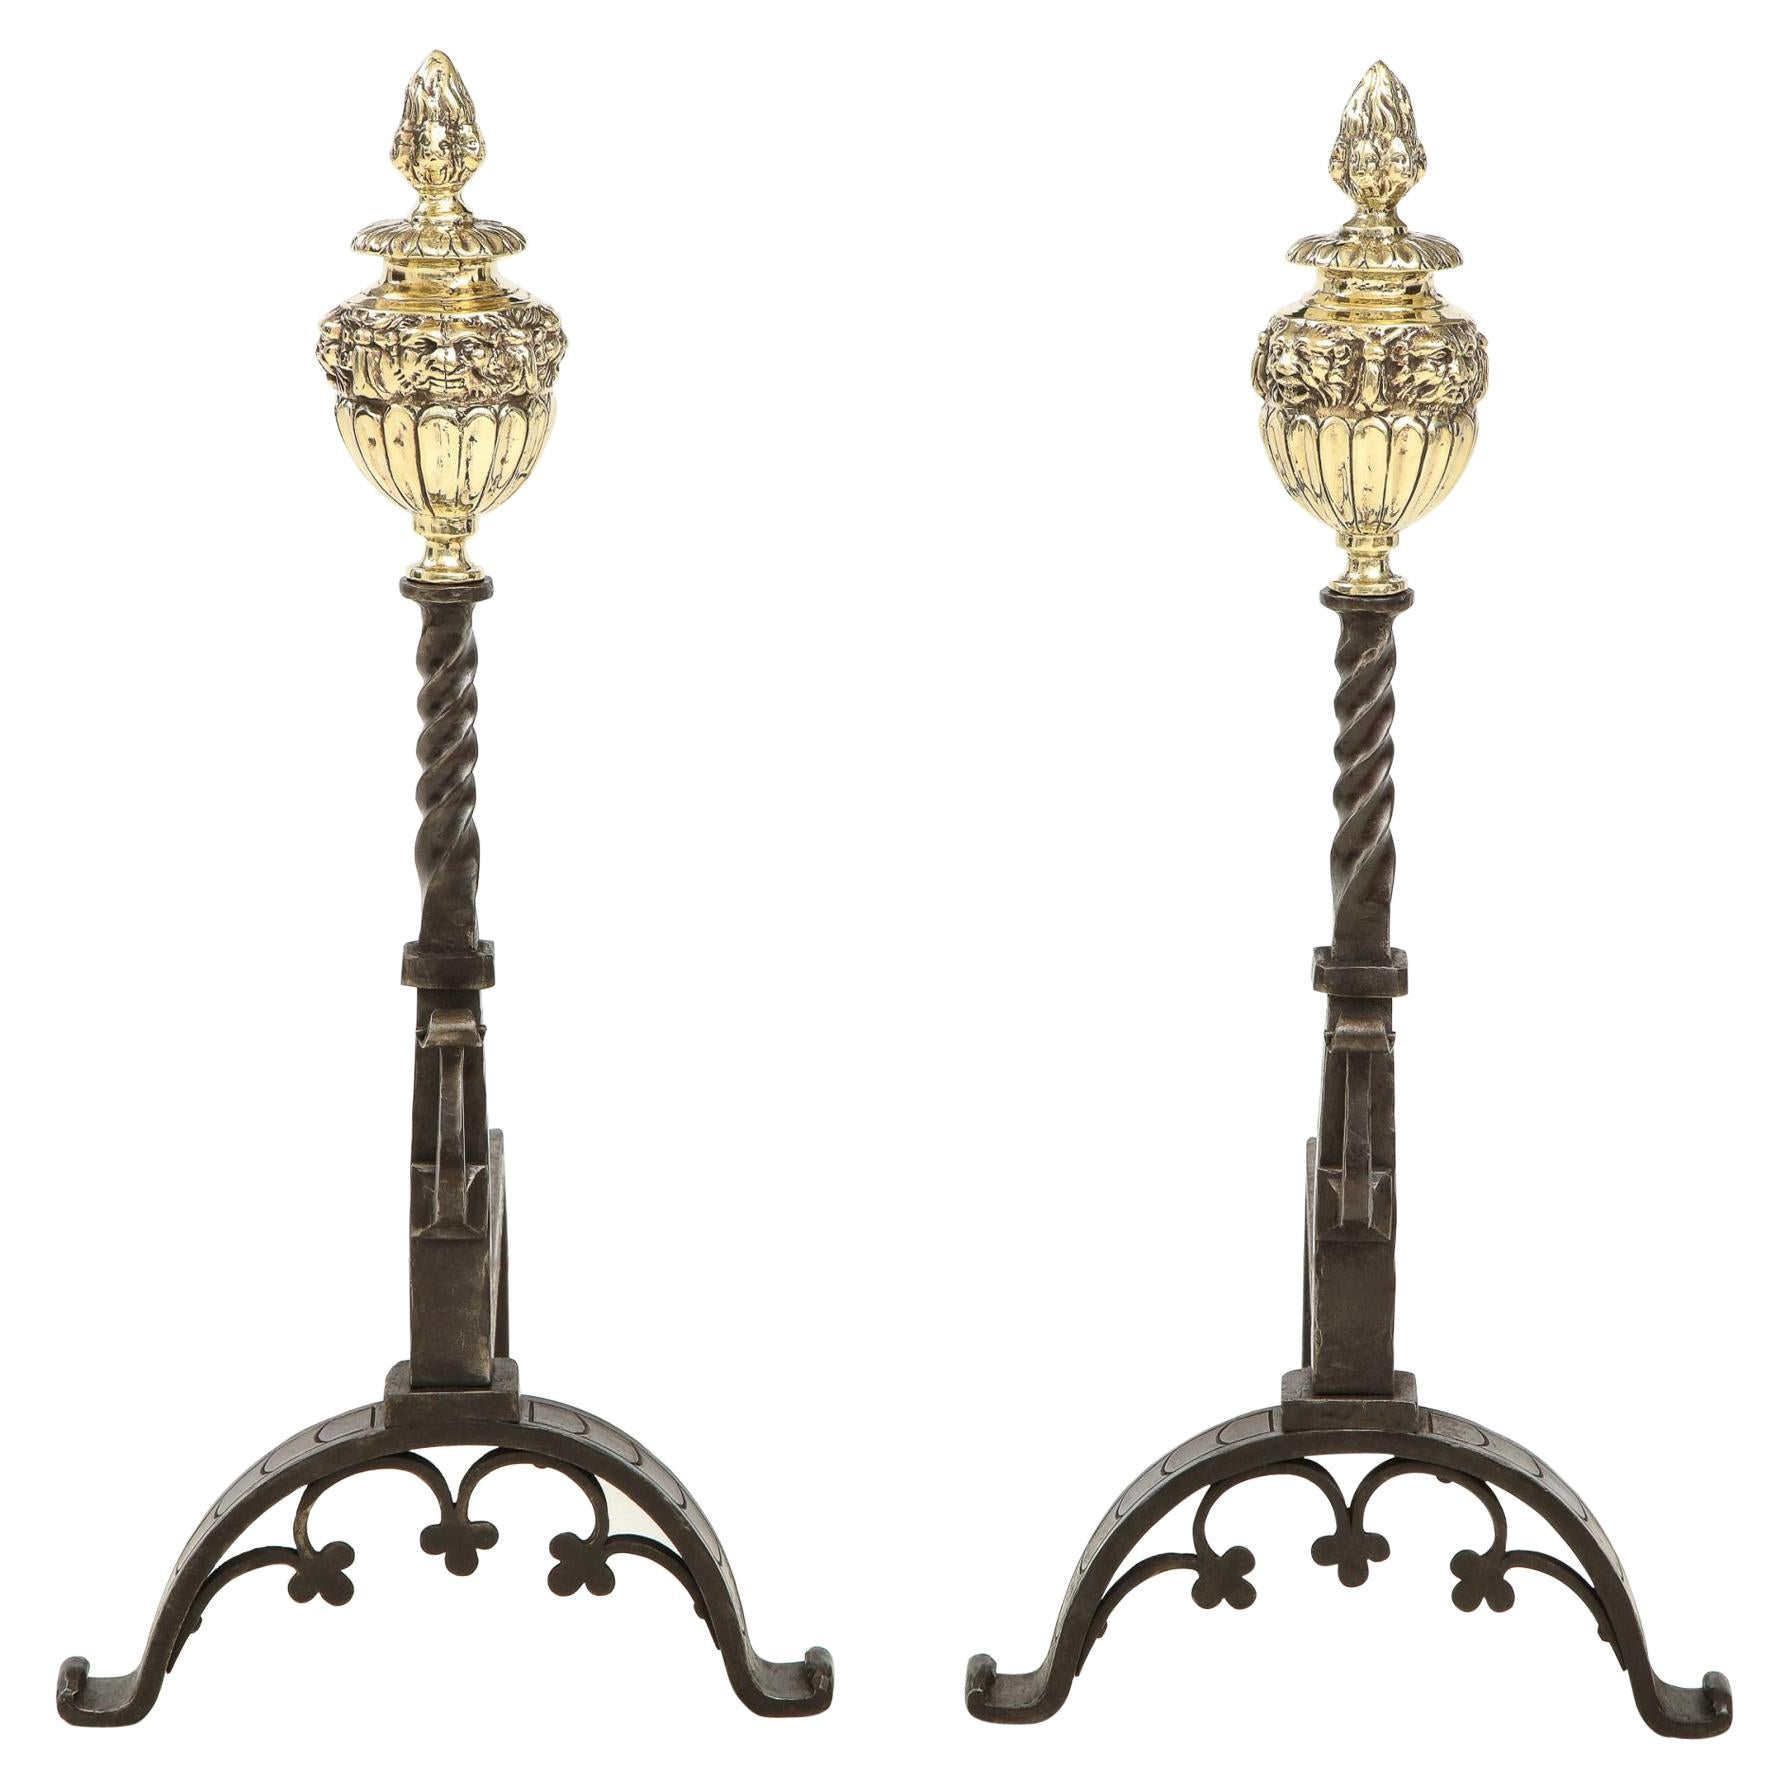 Pair of Baroque Andirons